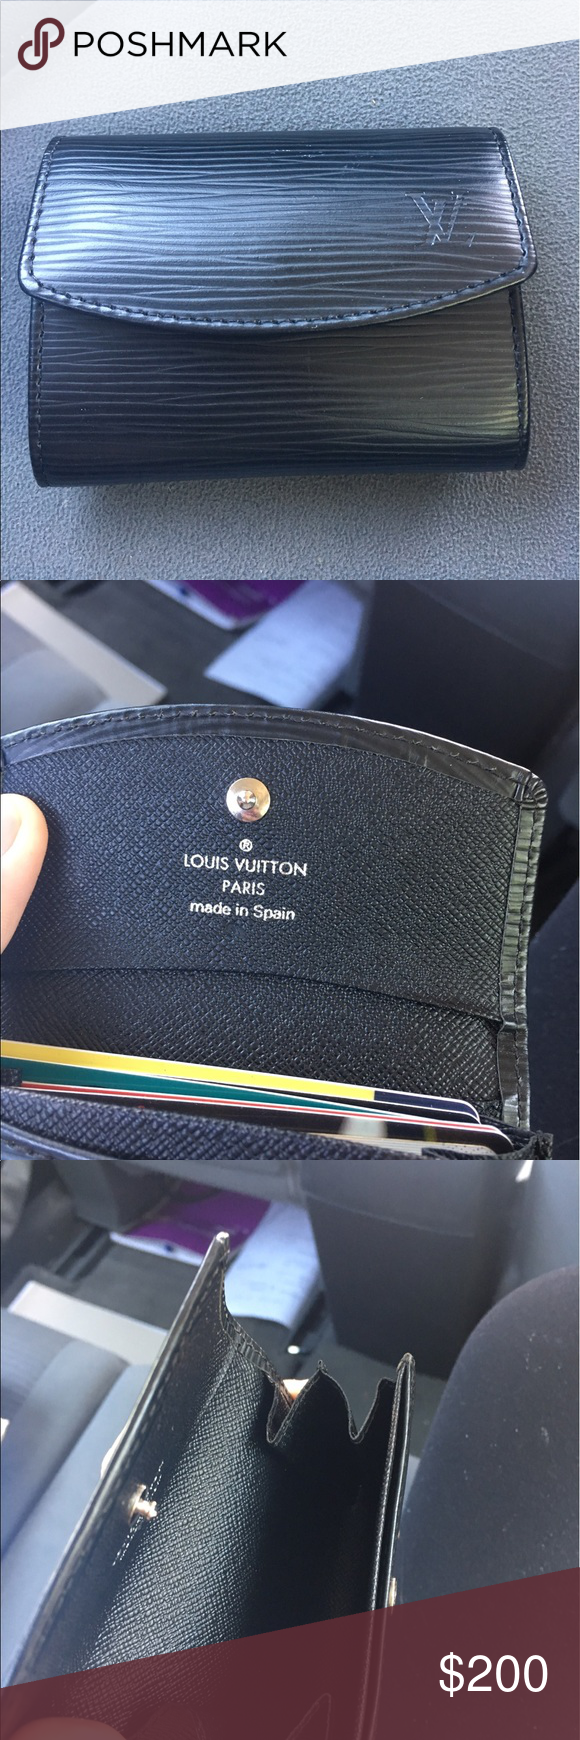 Louis Vuitton leather buisness/credit card holder Louis vuitton ...